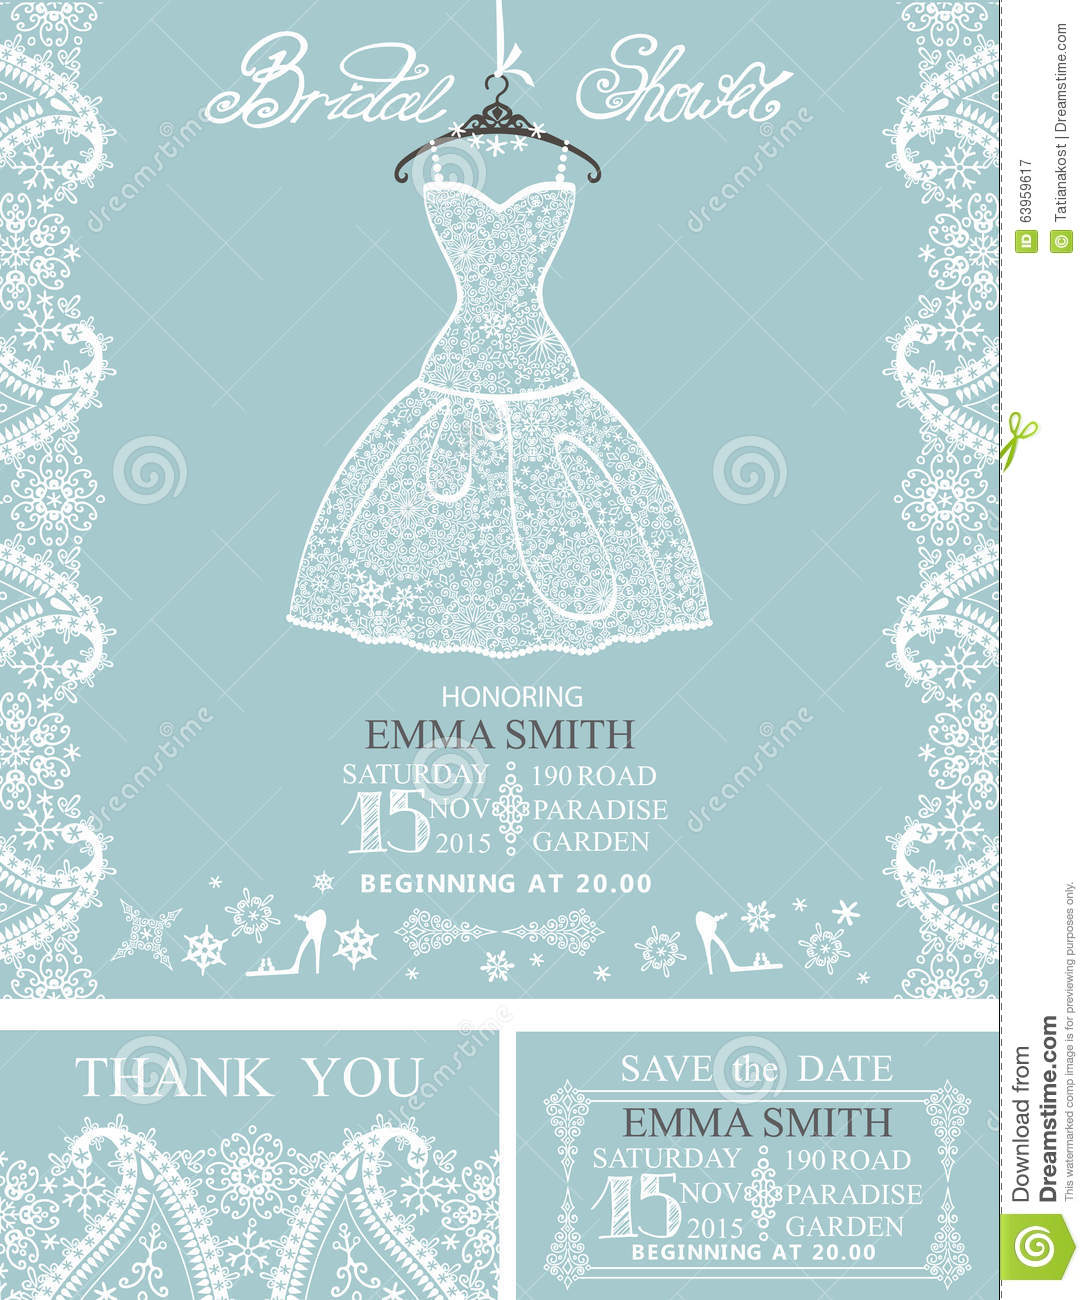 Bridal Shower Invitation Setwinterwedding Lace Stock Vector